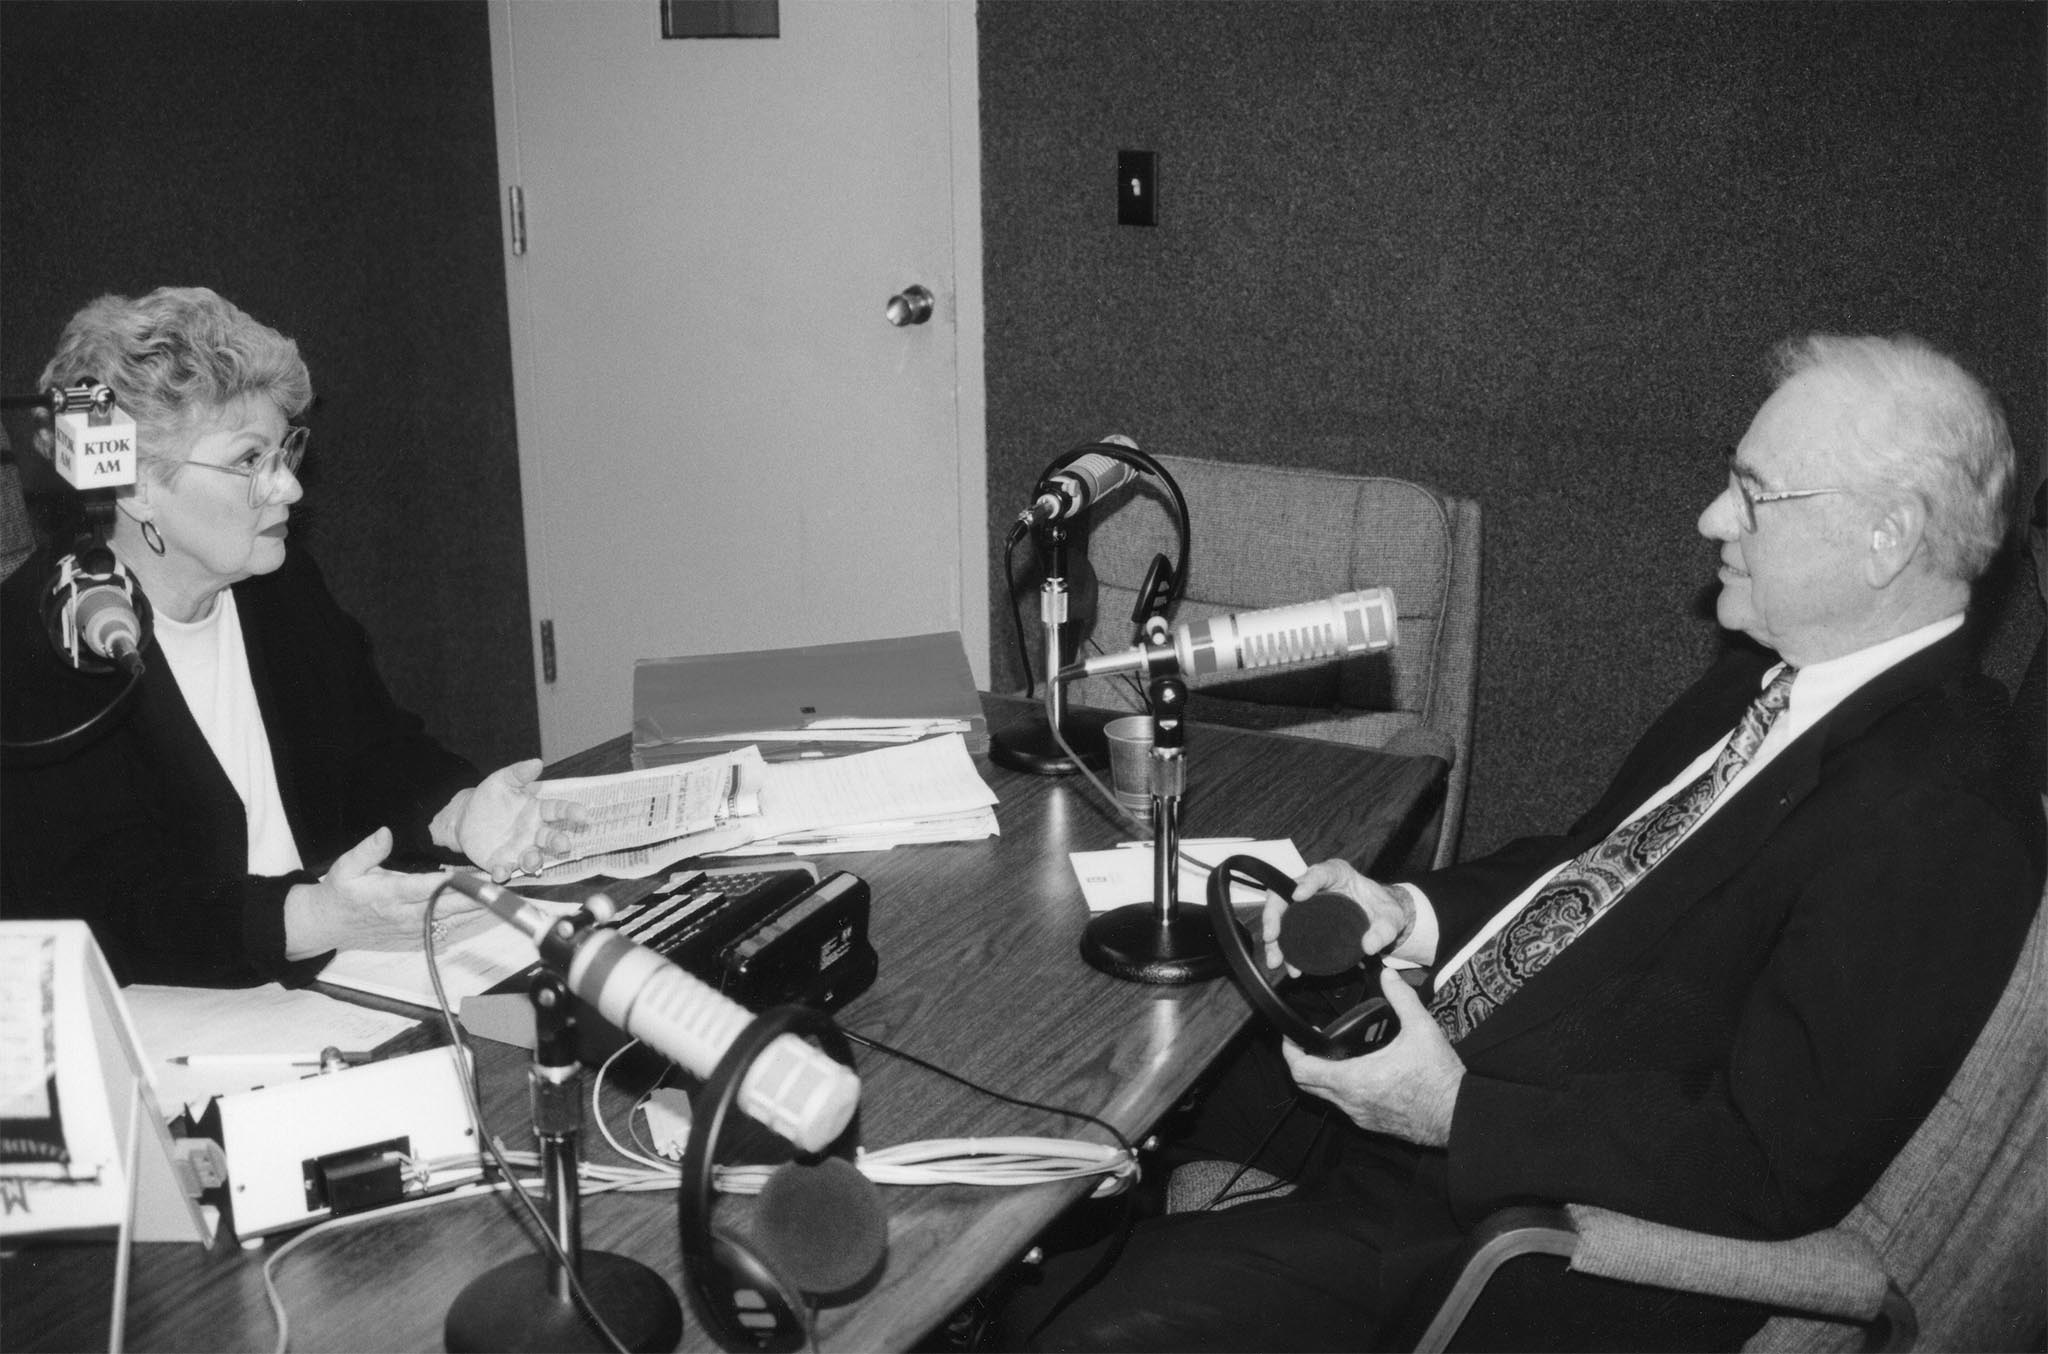 In 1993, the creation of the North American Free Trade Agreement was a hot agricultural topic. With farmers and ranchers holding a significant stake in the agreement, Oklahoma Farm Bureau President James L. Lockett chats with KTOK talk show host Carol Arnold in Oklahoma City, prior to going on the air to discuss the Farm Bureau position on NAFTA.